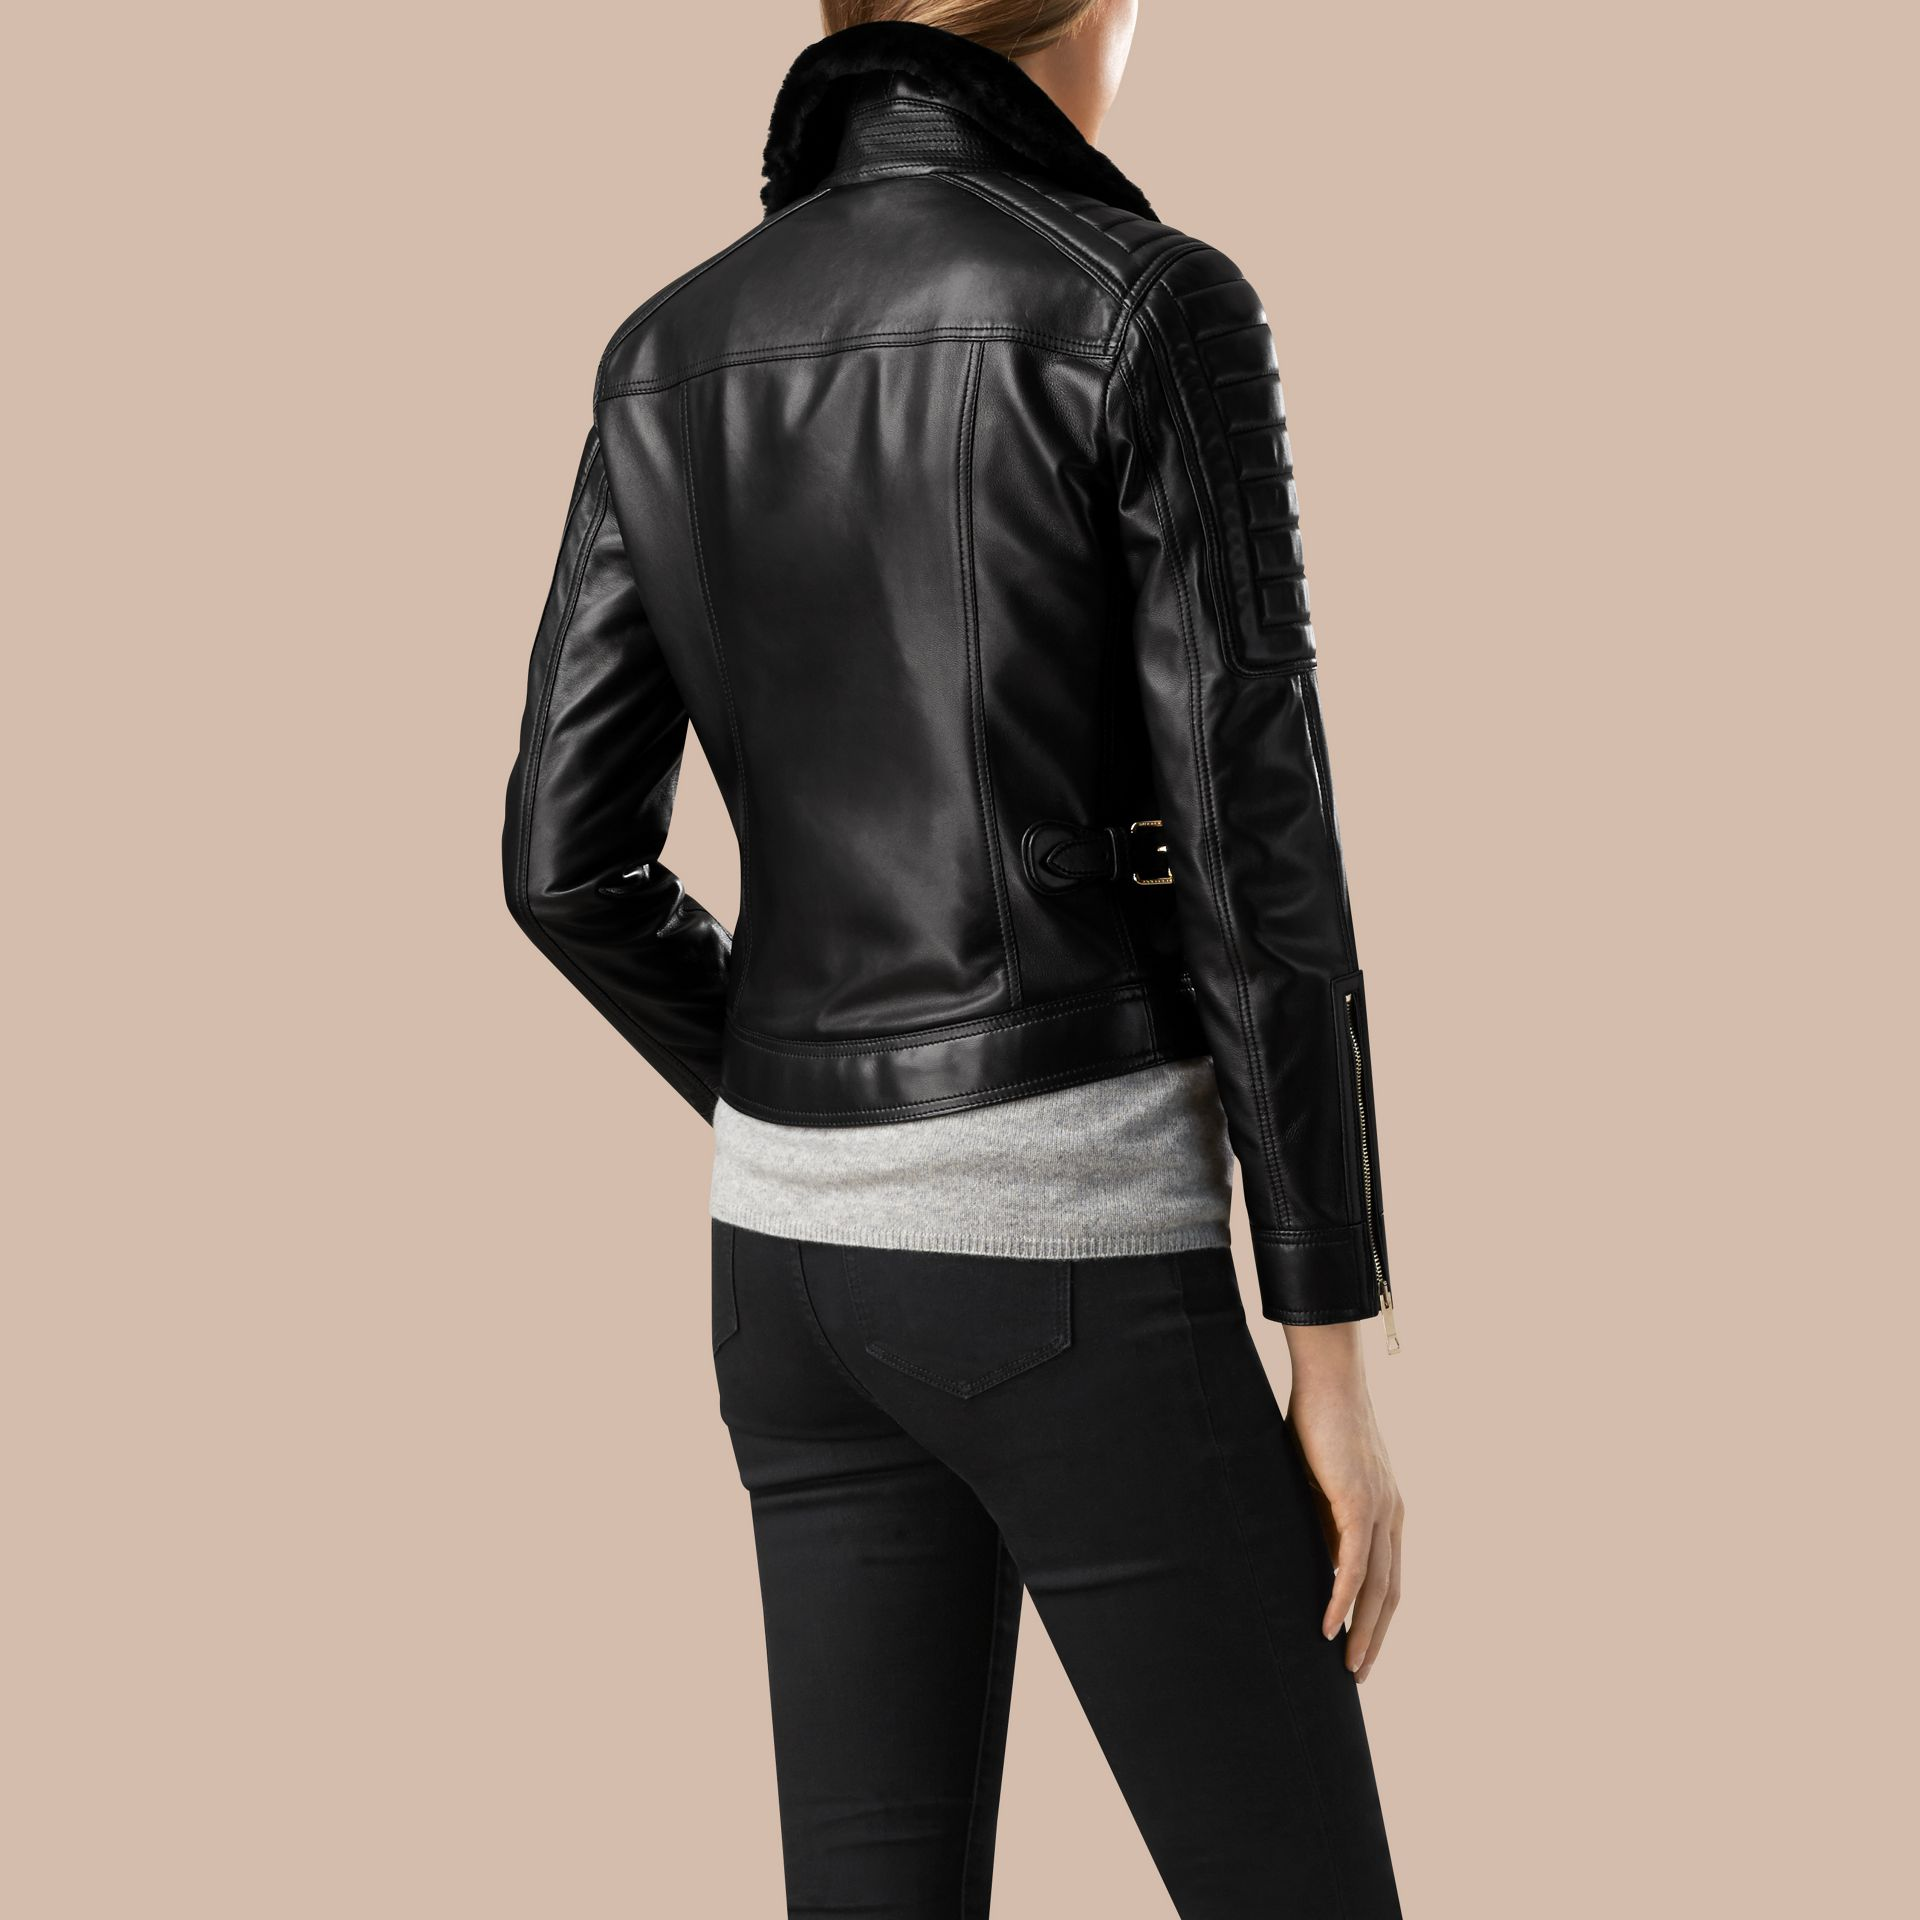 Black Lambskin Biker Jacket with Shearling Topcollar - gallery image 2